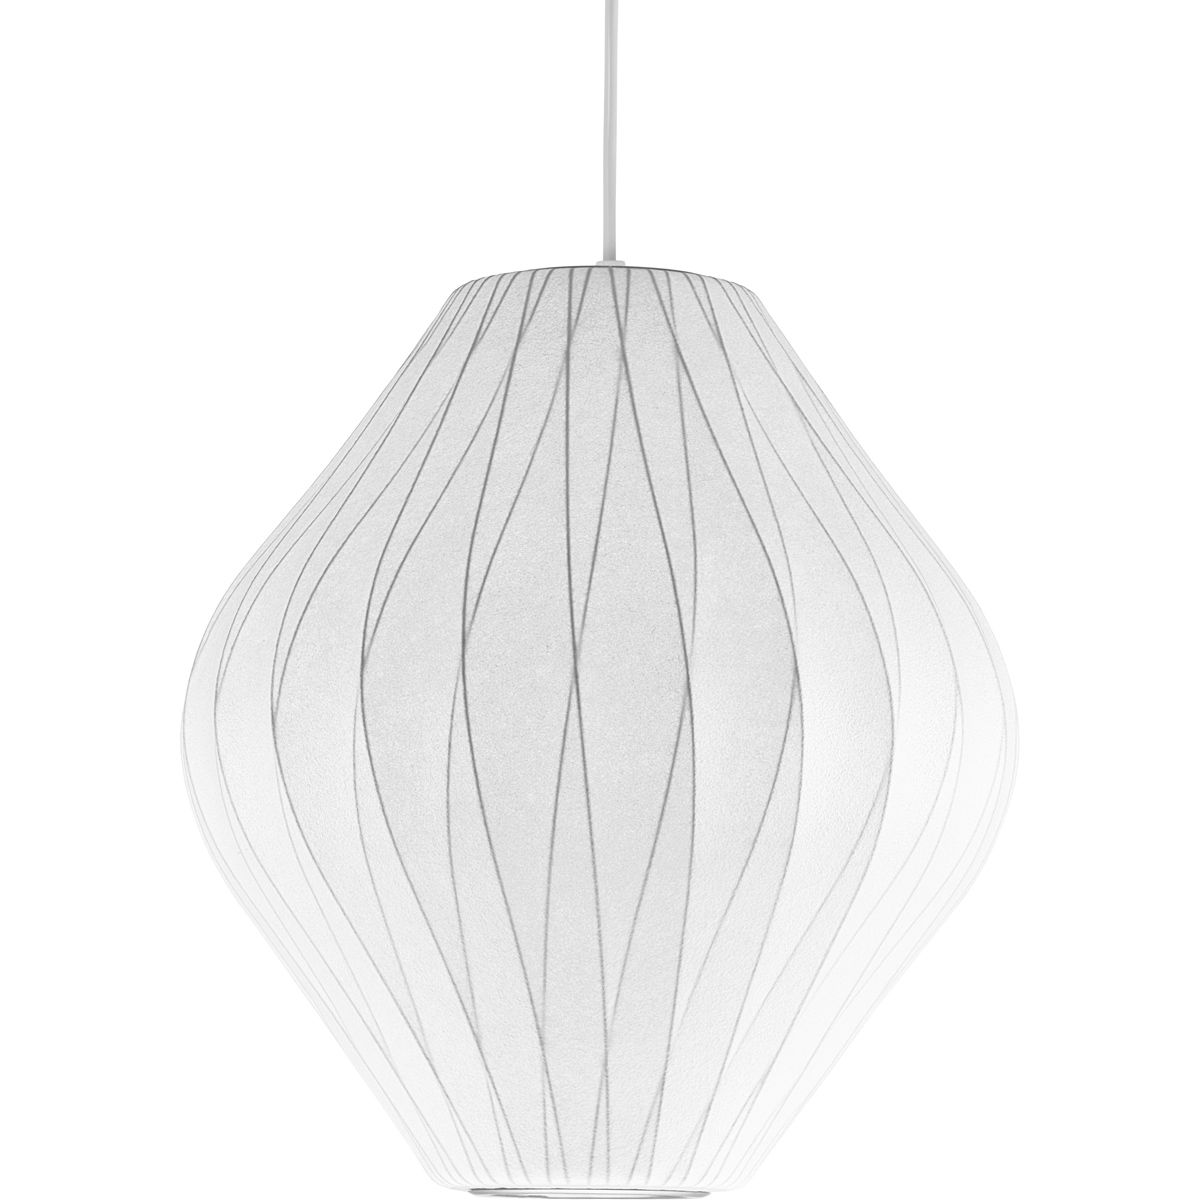 The Nelson Bubble Lamp series was first developed